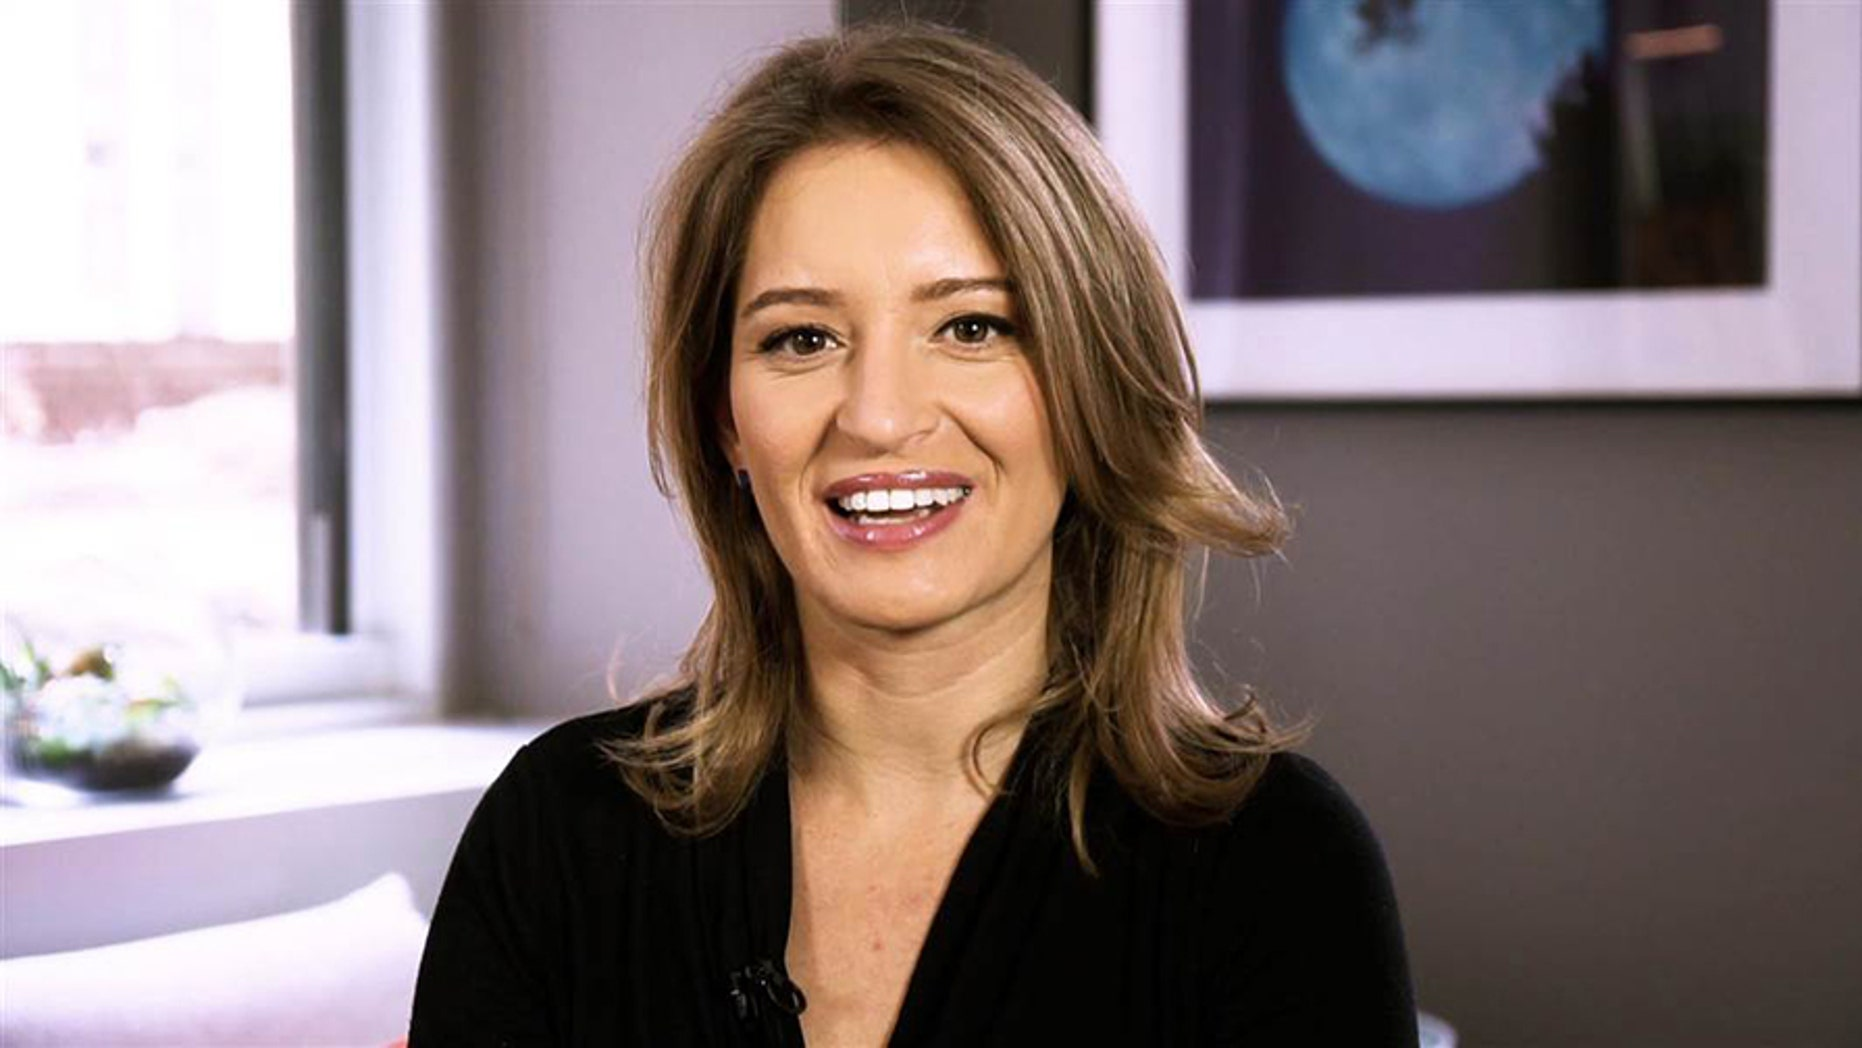 MSNBC star Katy Tur blasted for 'condescending' take on GOP tax cut